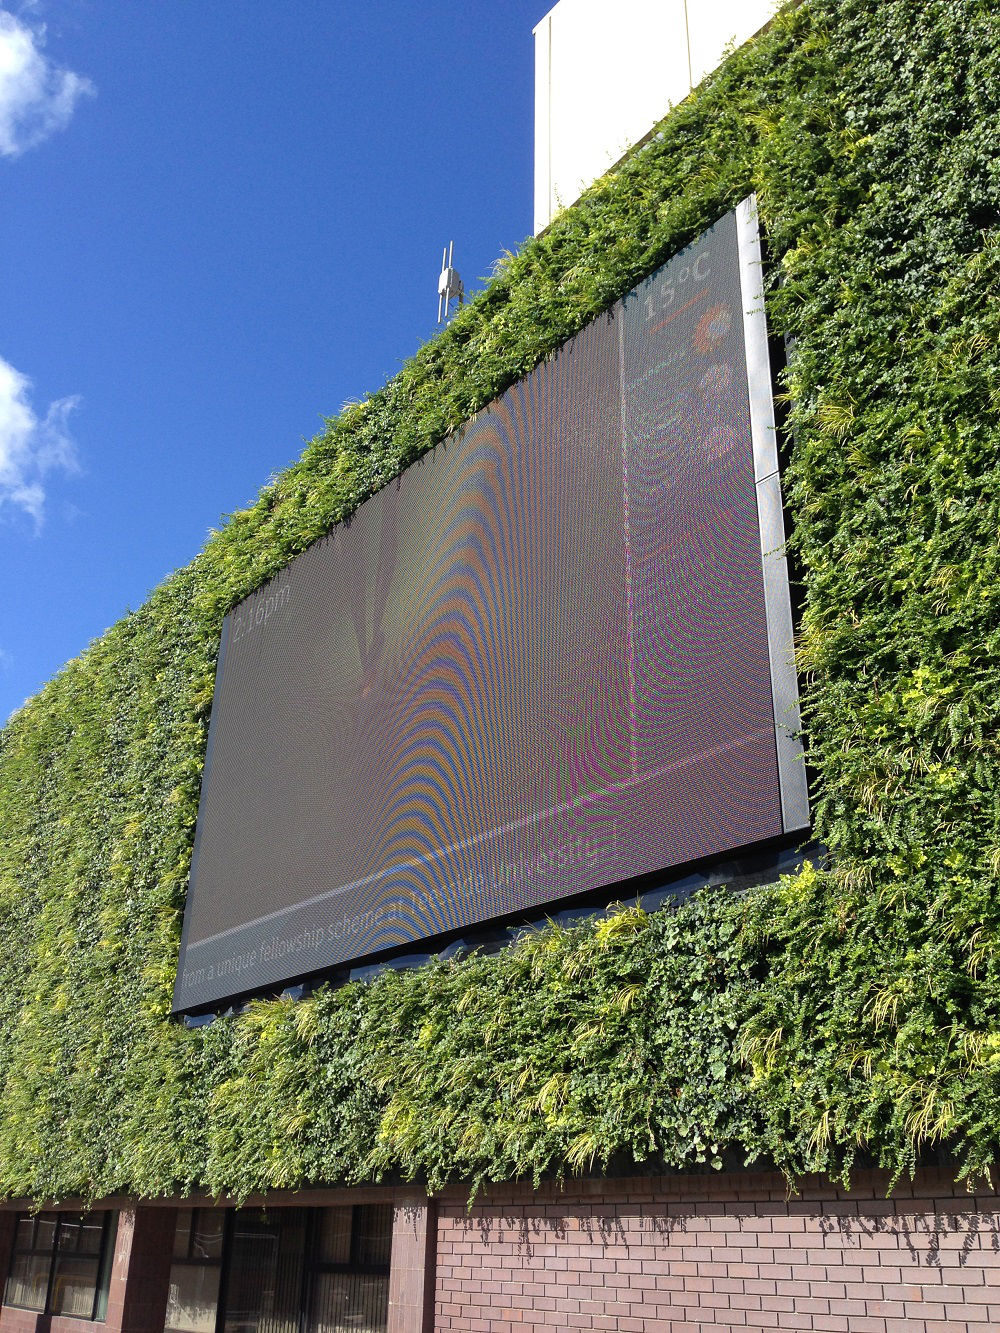 Combining Drainage And Plant Life With An LED Screen Required Specialist  Designs To Ensure That The Separate Entities Were Coordinated Seamlessly.